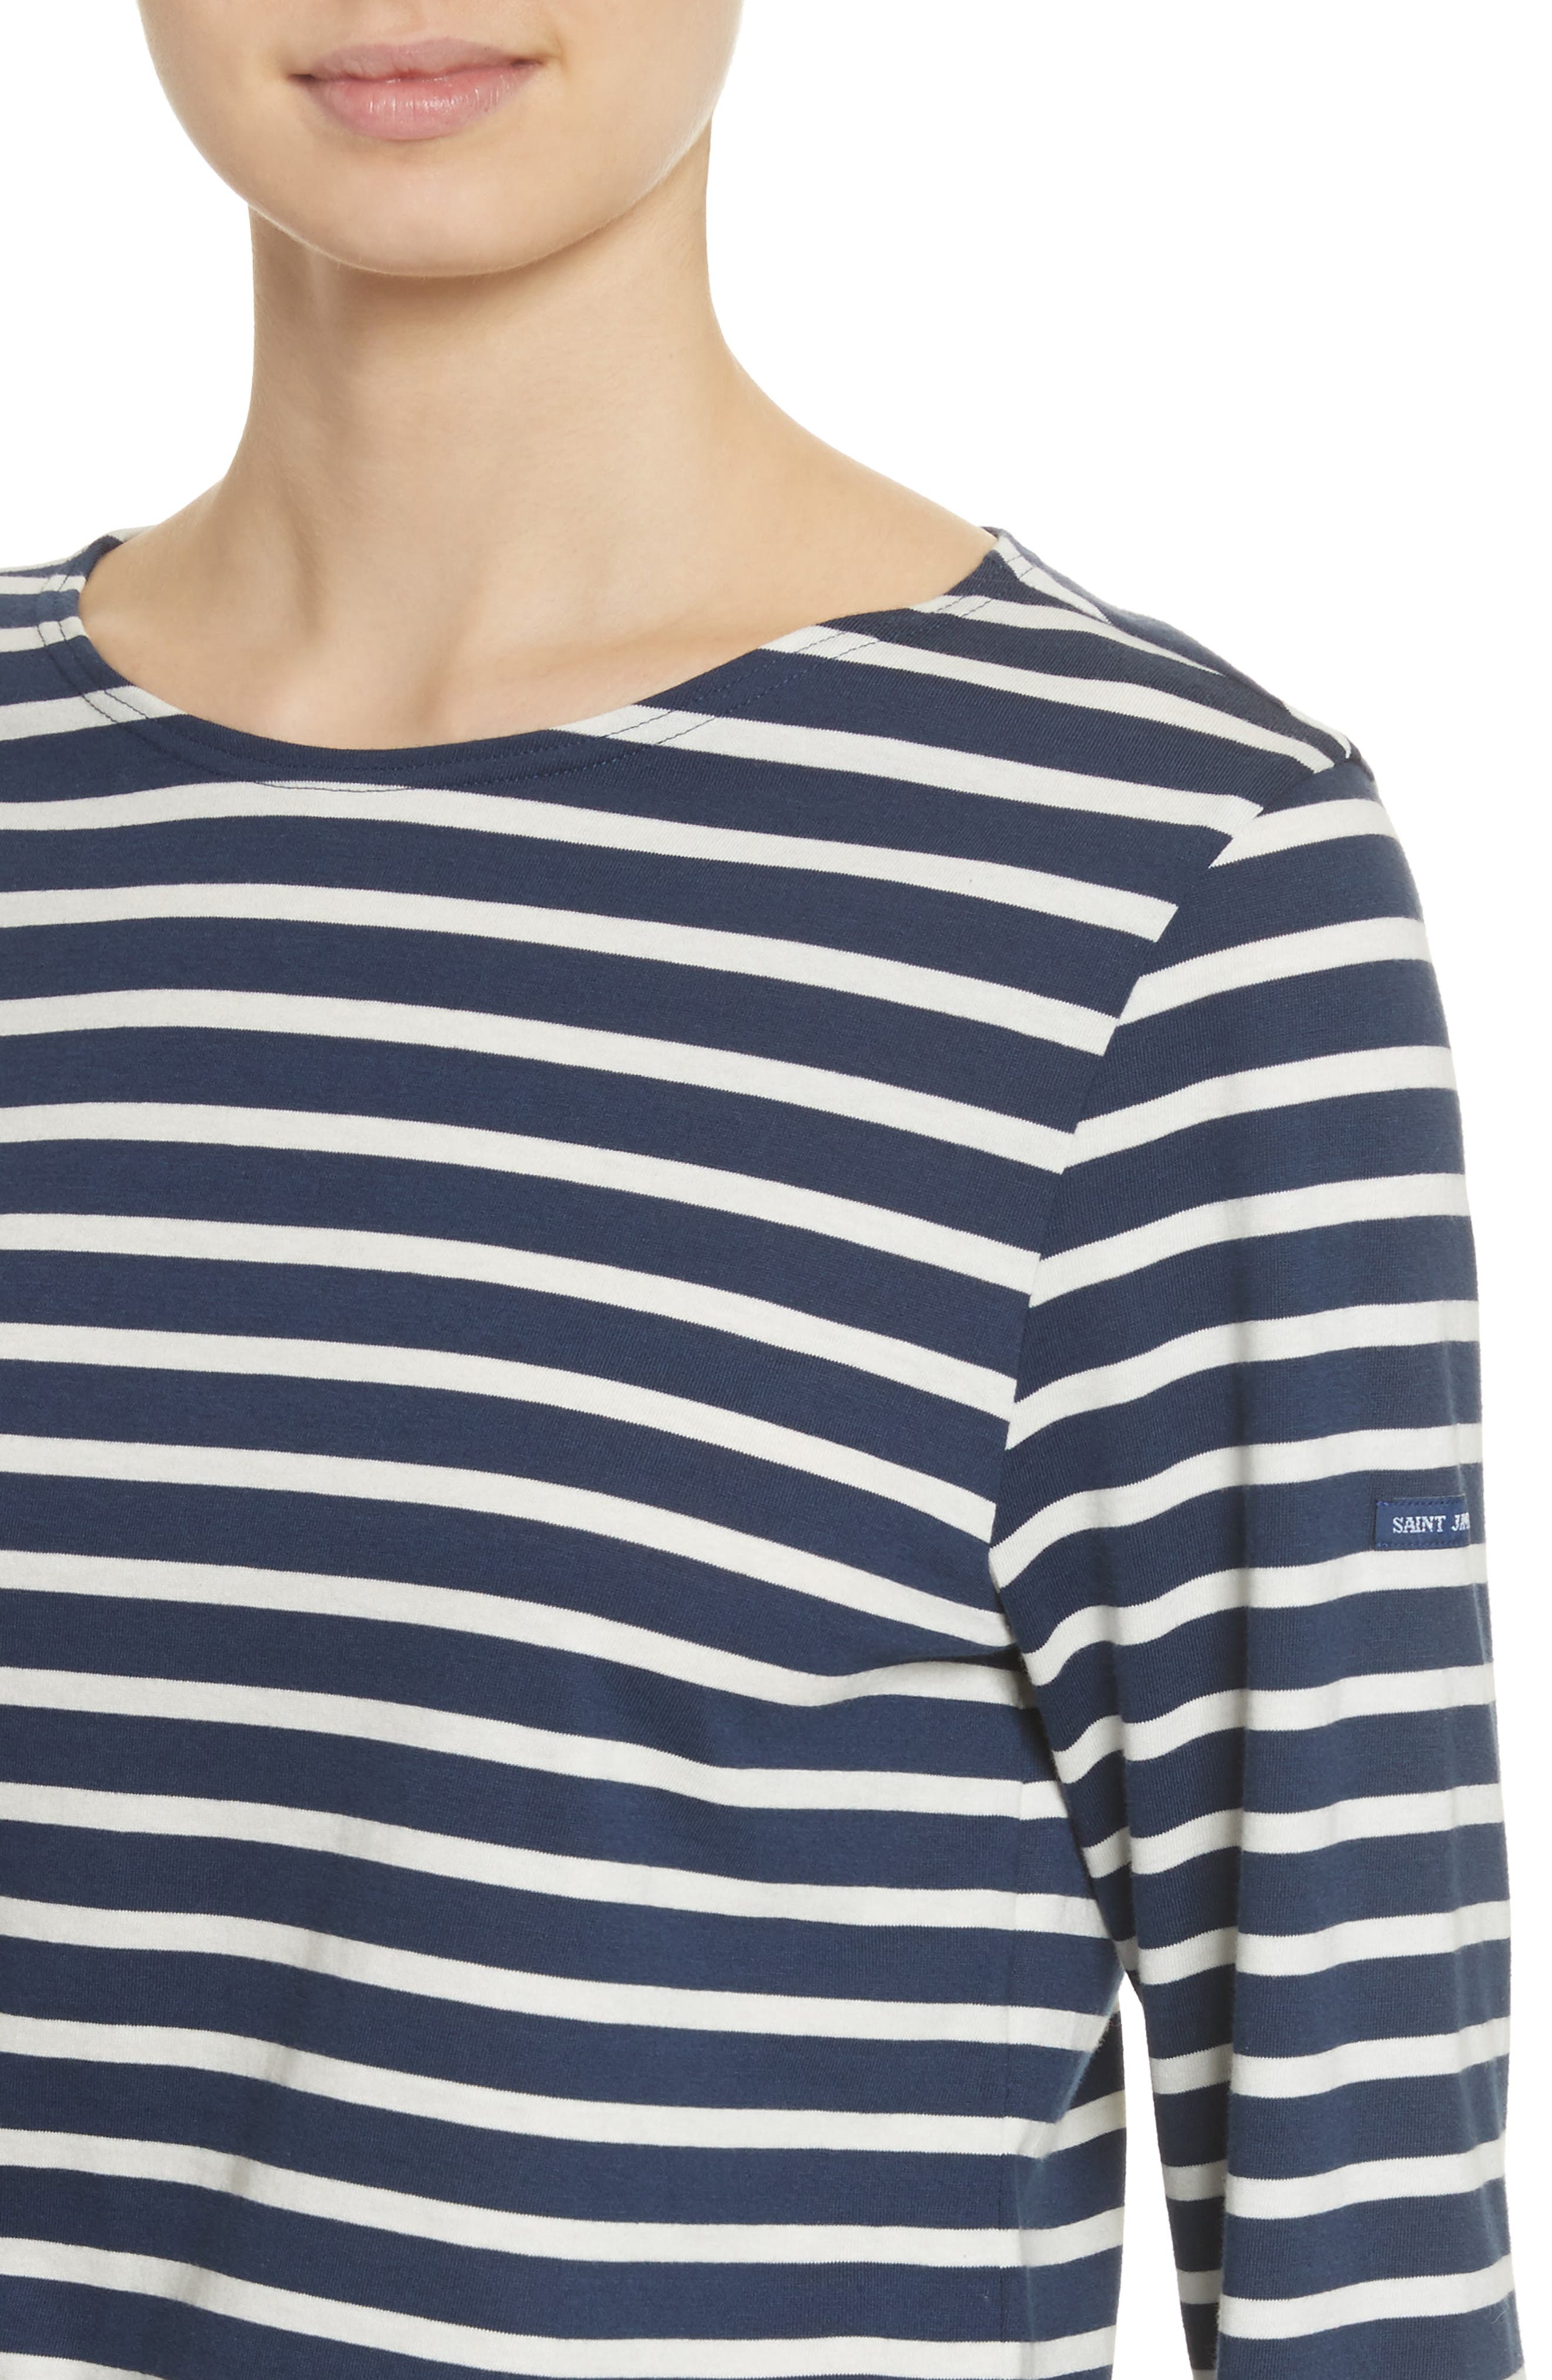 Minquiers Moderne Striped Sailor Shirt,                             Alternate thumbnail 5, color,                             Navy/ Off White